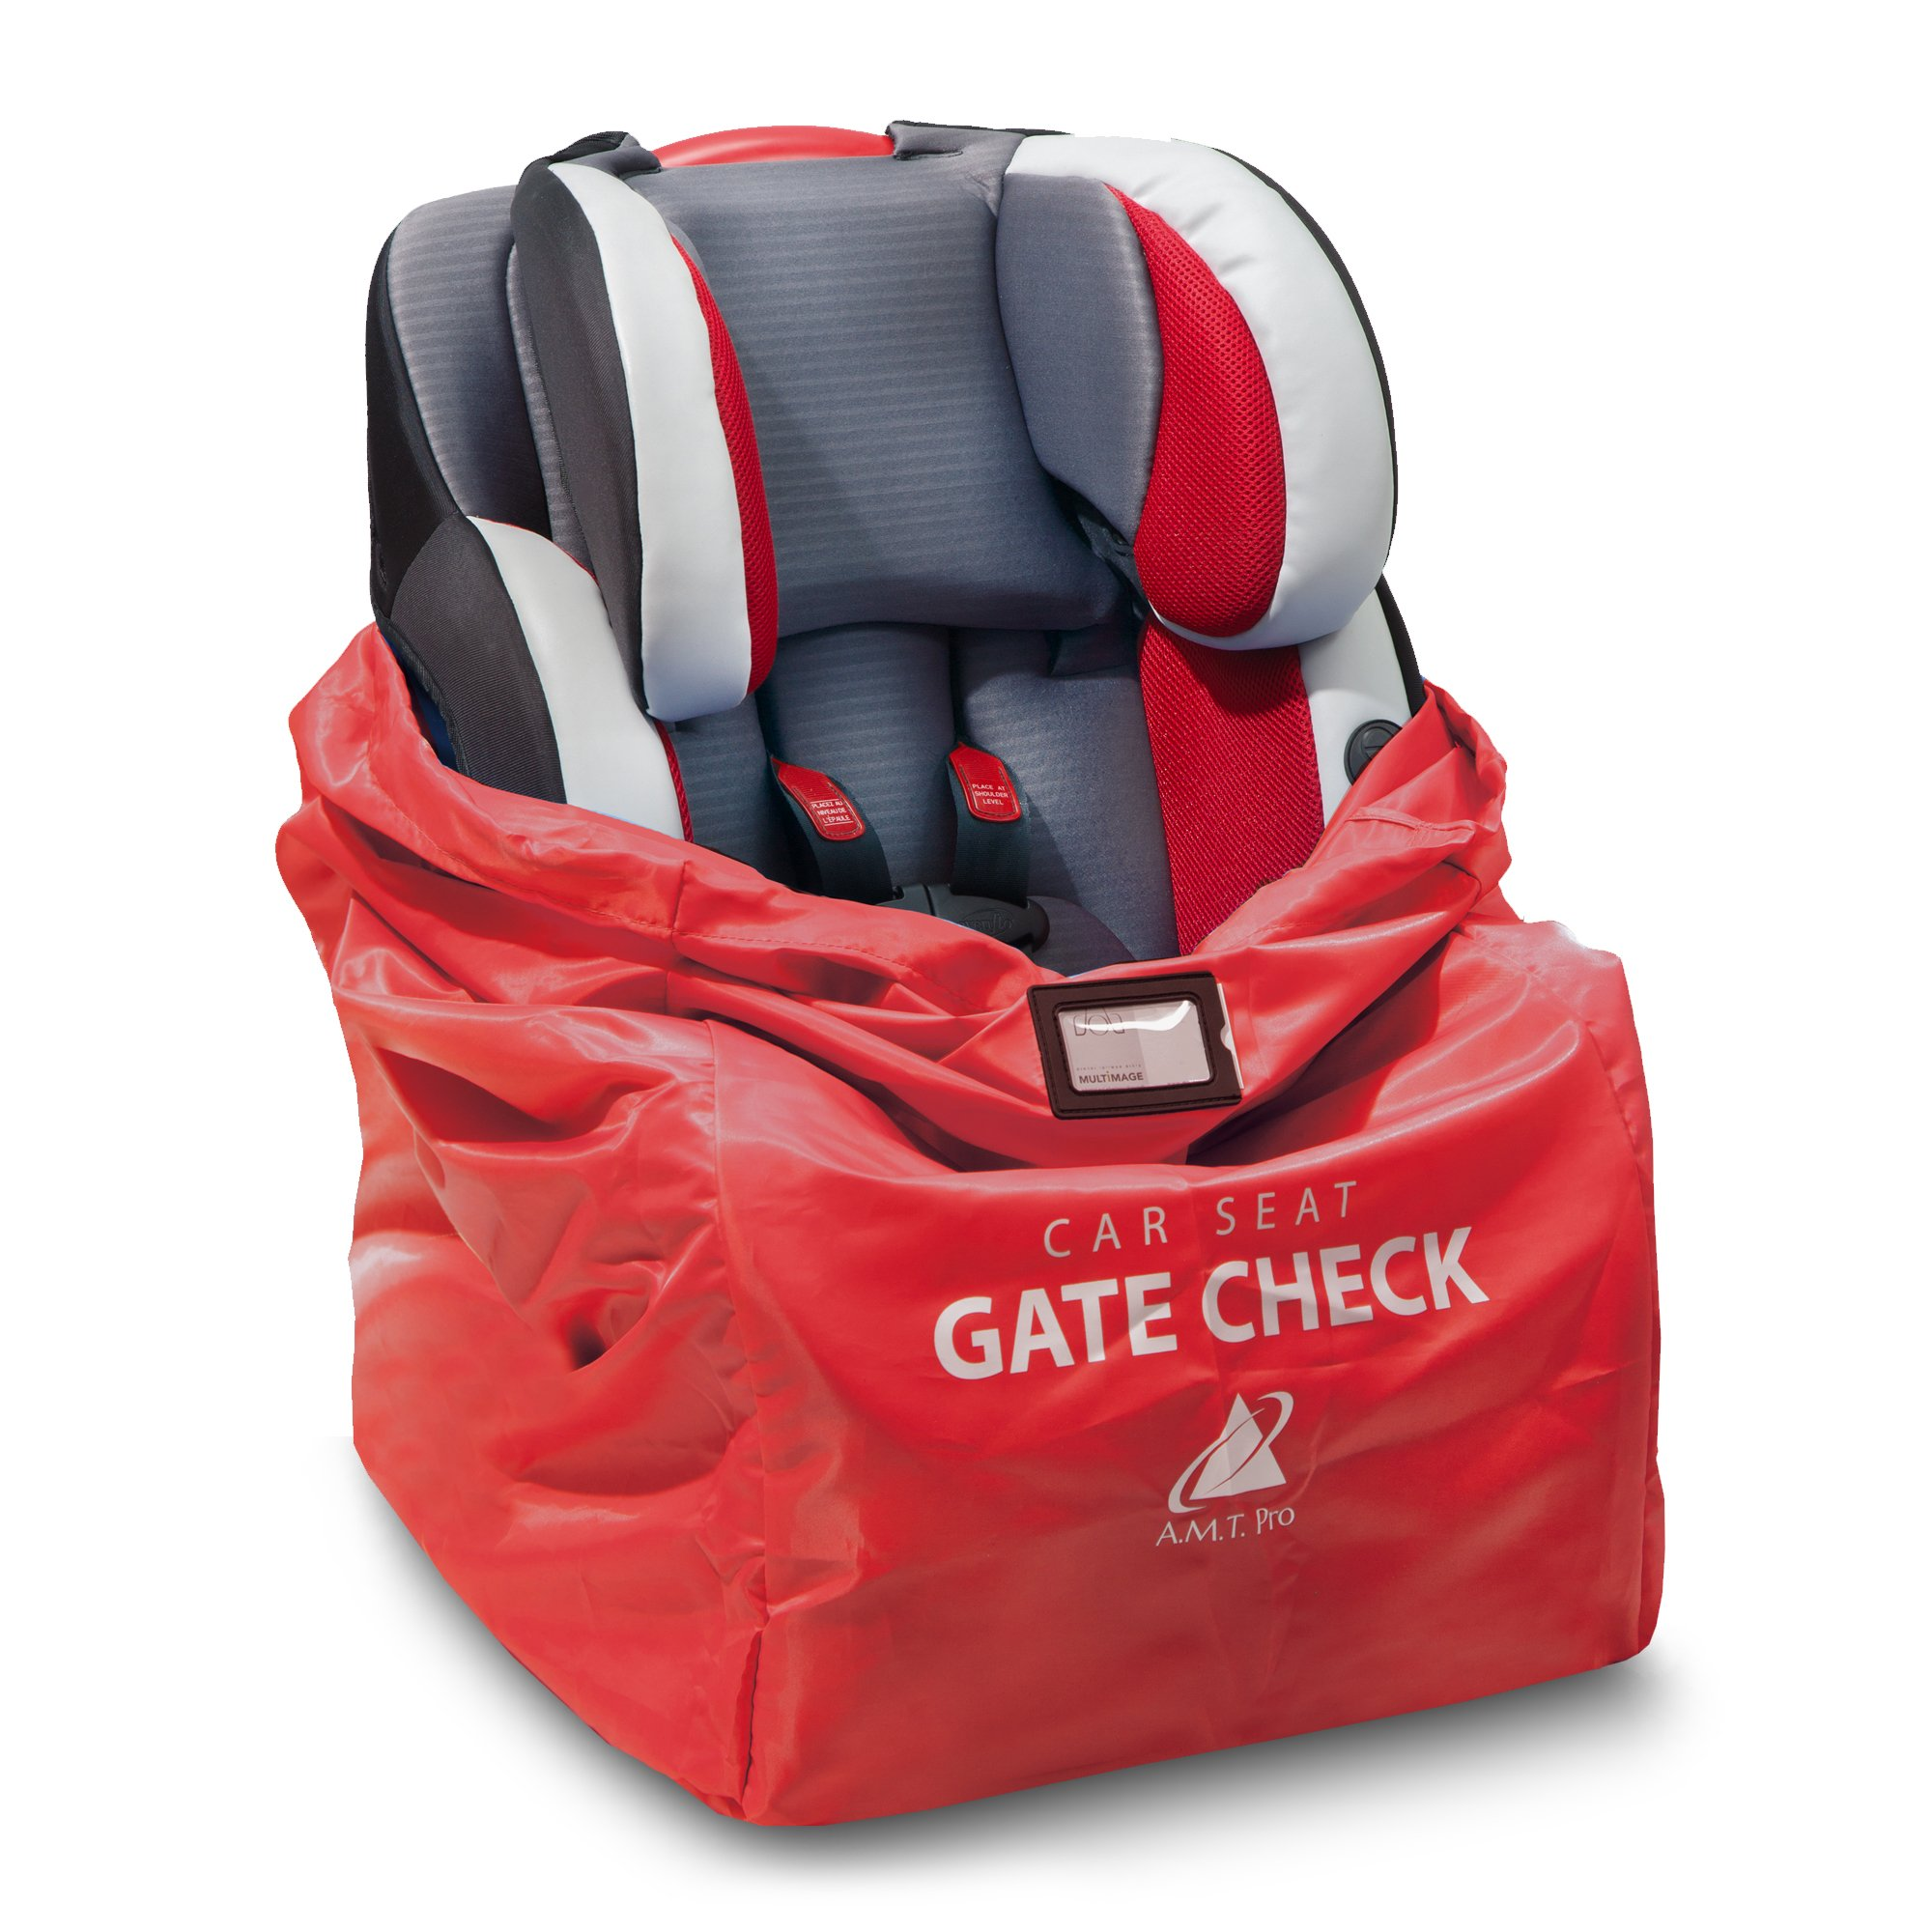 Car Seat Travel Bag – Durable, Water-Resistant Gate Check Bag with Adjustable Straps – Protector Traveling Bag Cover Carrier Must-Have Baby Travel Accessories for Airplanes and Trains by AMT Pro Red